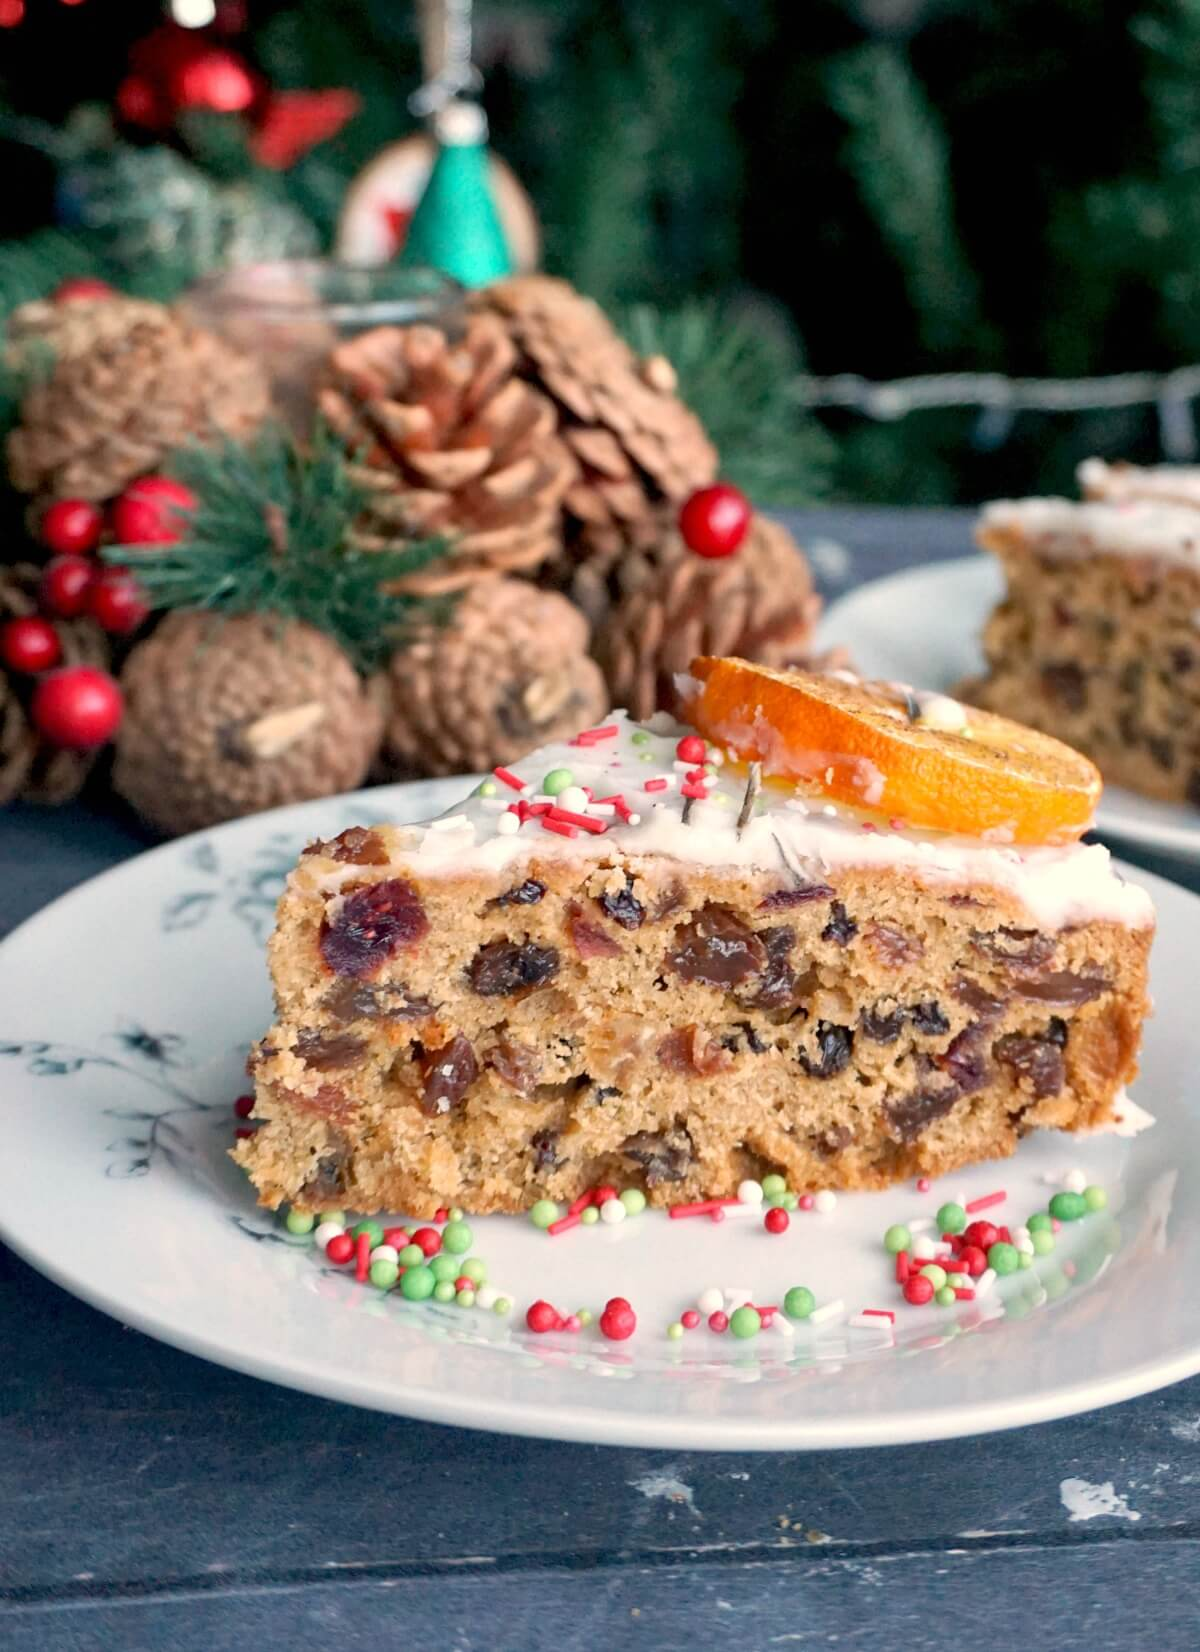 A slice of Christmas fruit cake on a white plate with Christmas decorations in the background